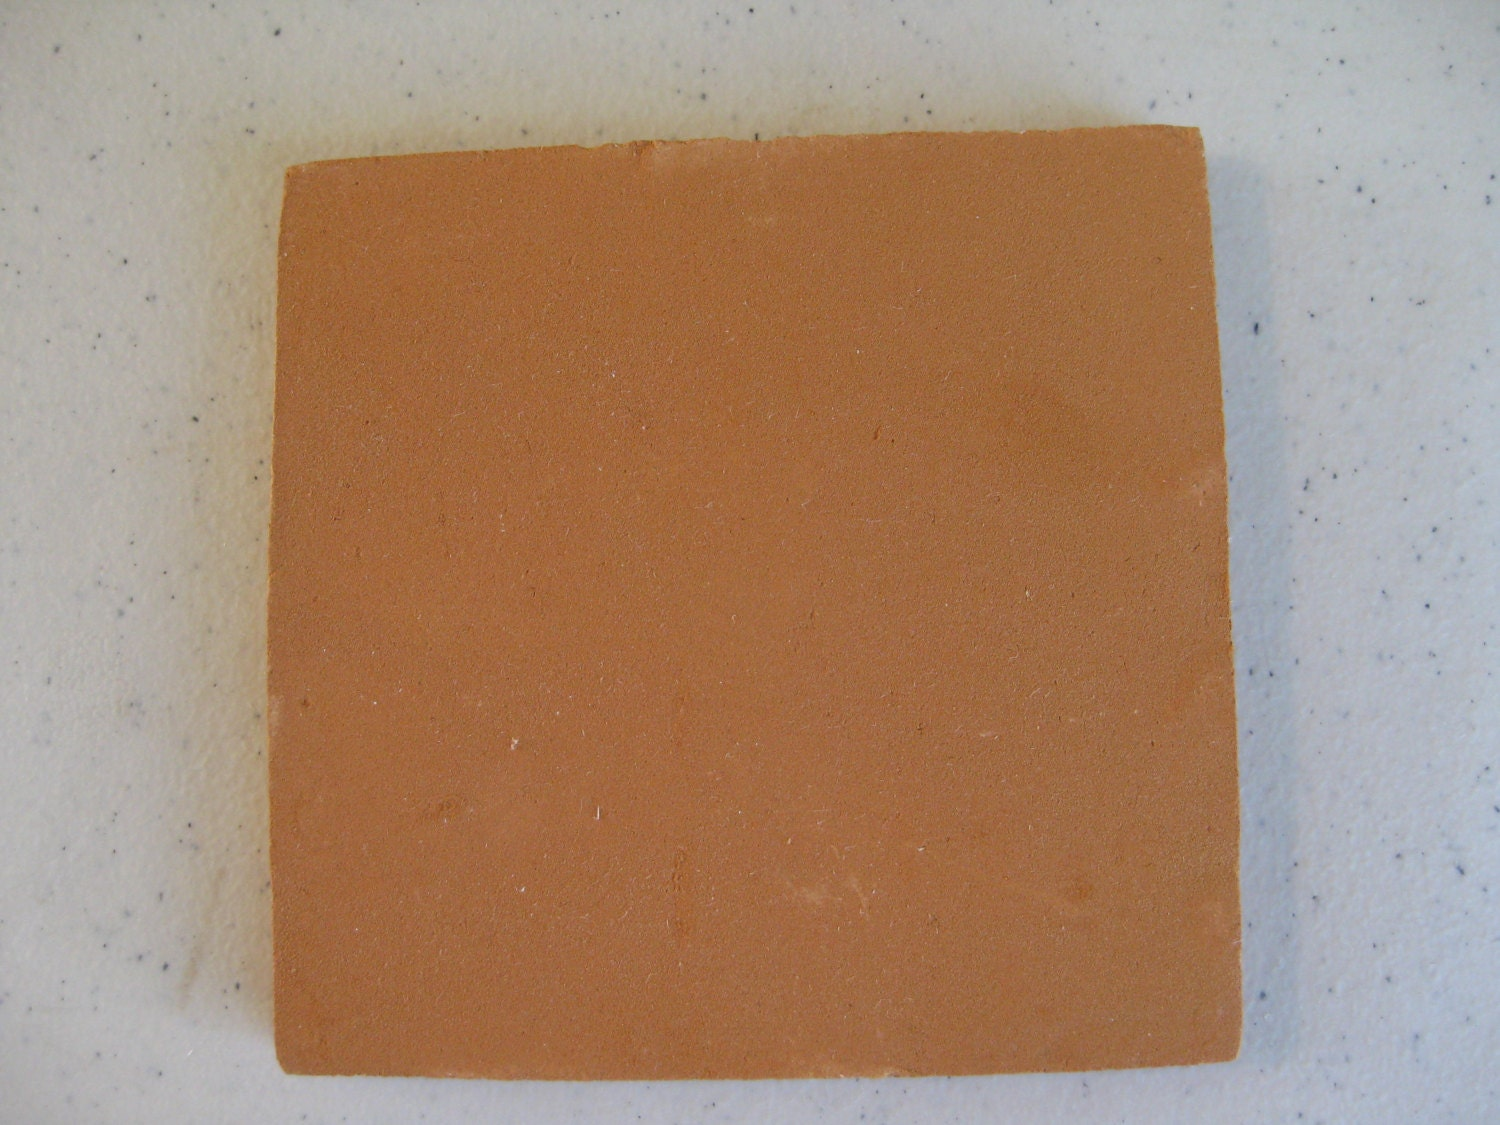 50 unfinished bisque tile talavera terracotta for projects 4x4 zoom dailygadgetfo Gallery